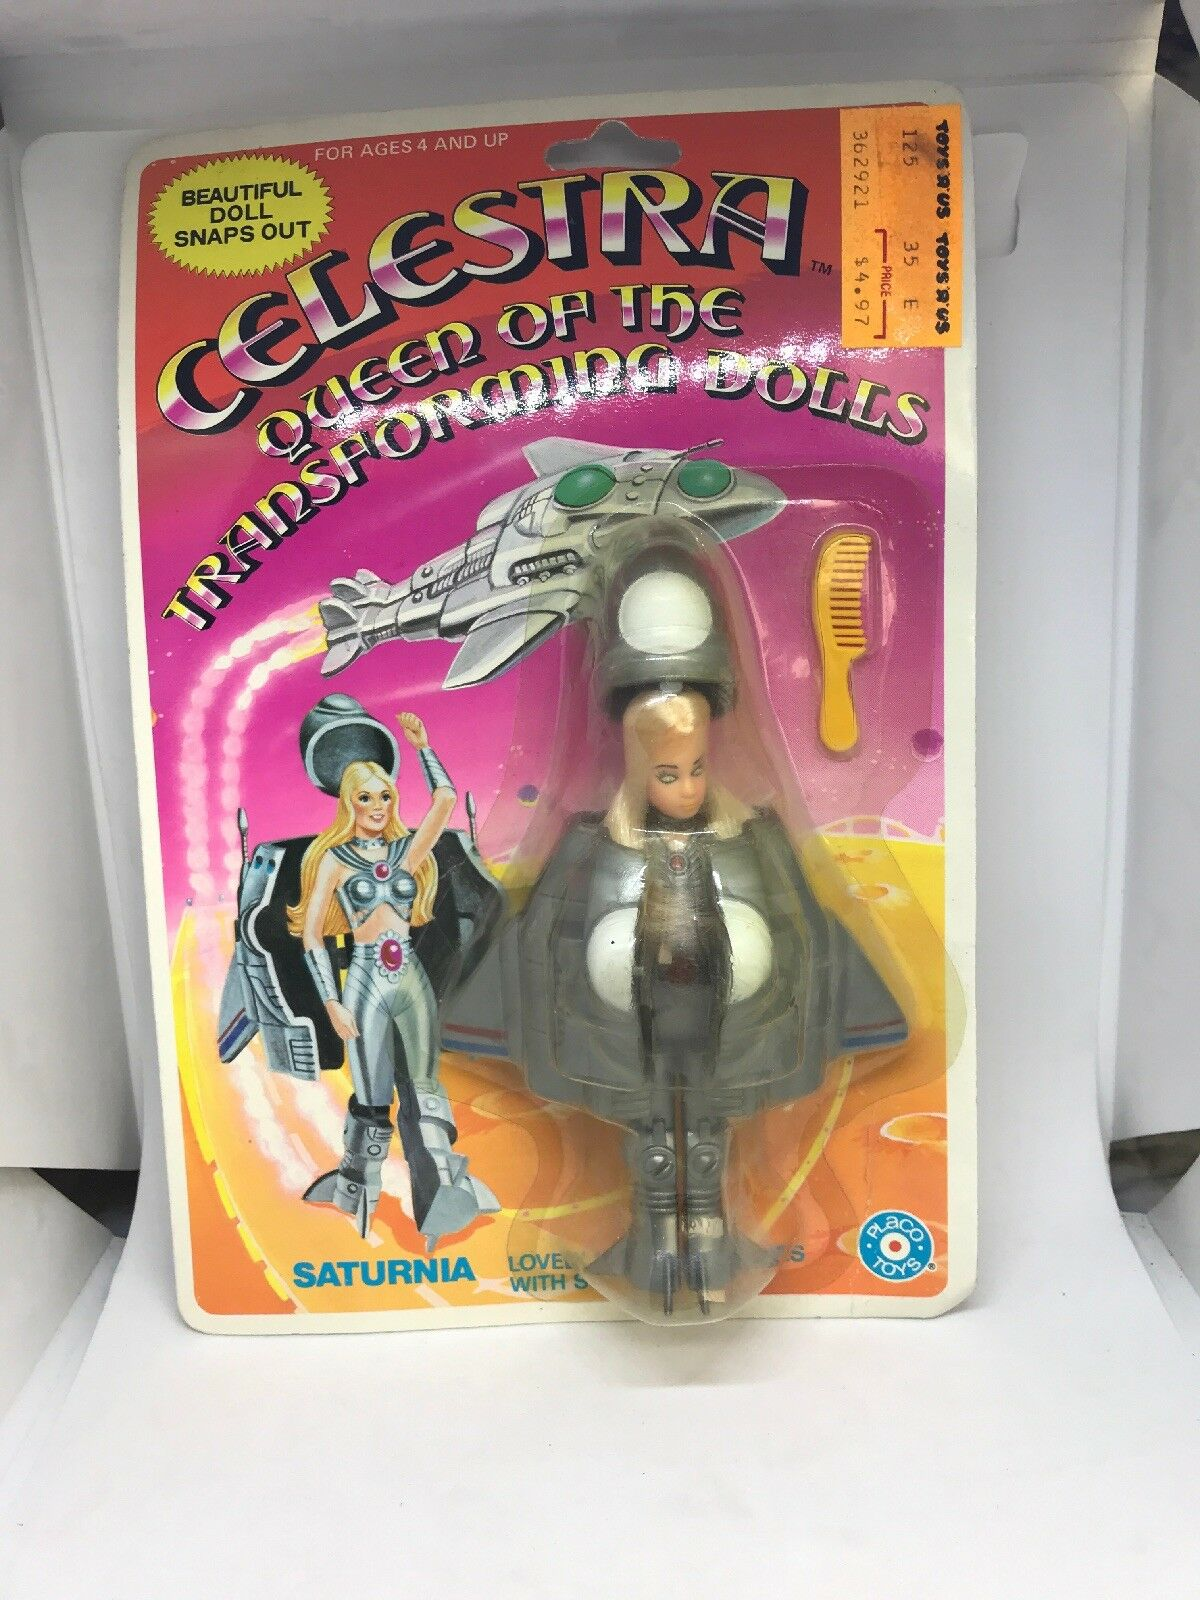 SATURNIA Celestra Queen of the Transforming Dolls Dolls Dolls 1986 Placo Action Figure New 60b16d